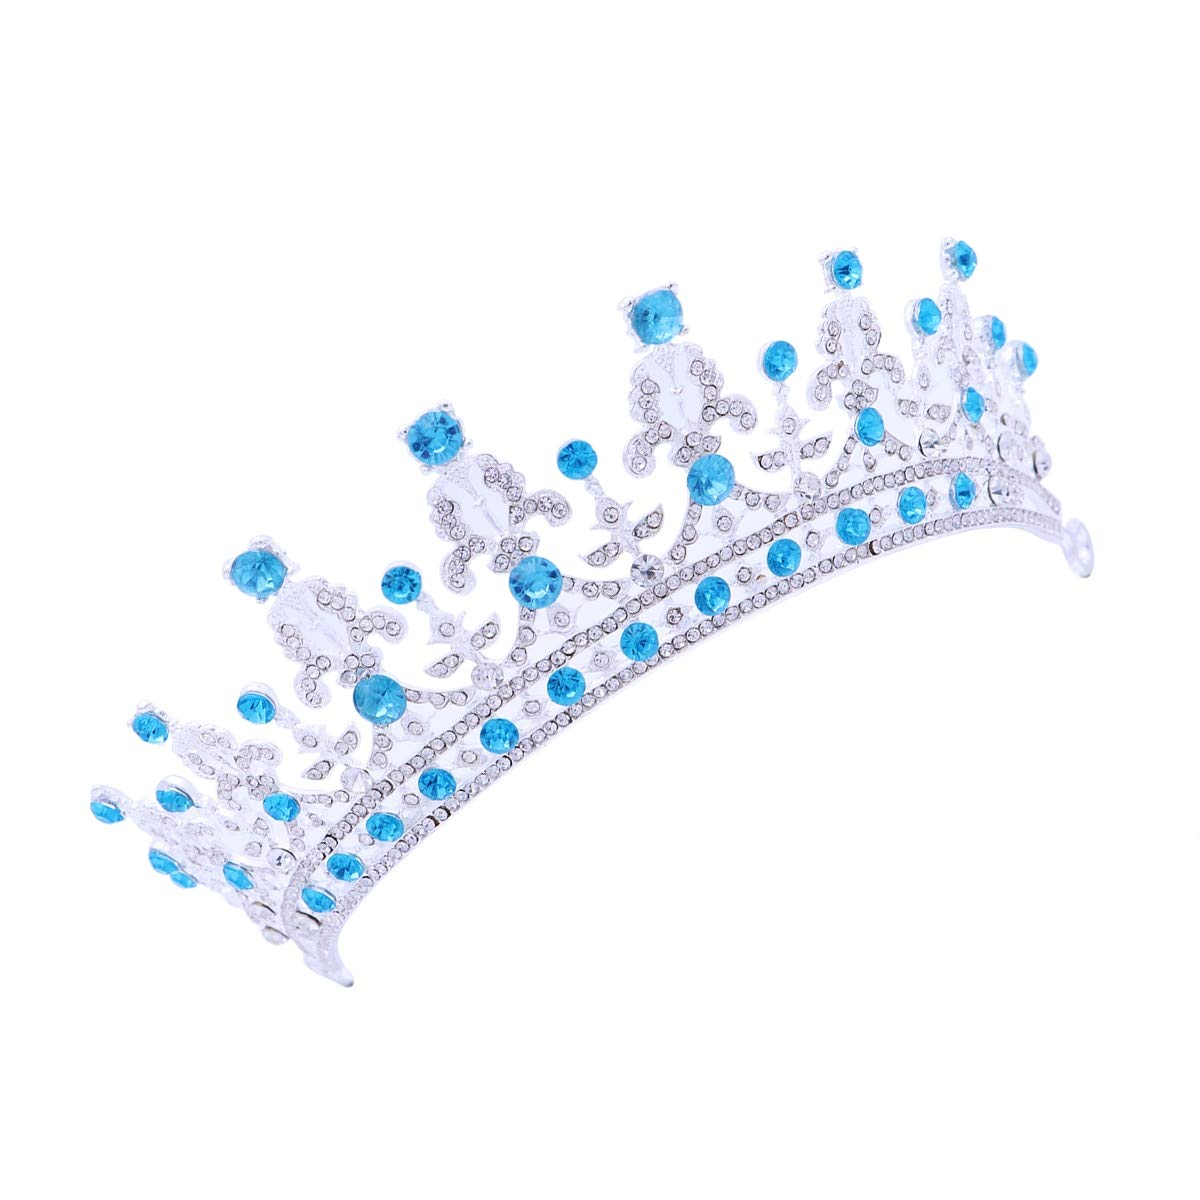 Baroque Royal Wedding Diamond Crown Tiara Diadem Bridal Headdress Women Girls Beauty Hair Accessories